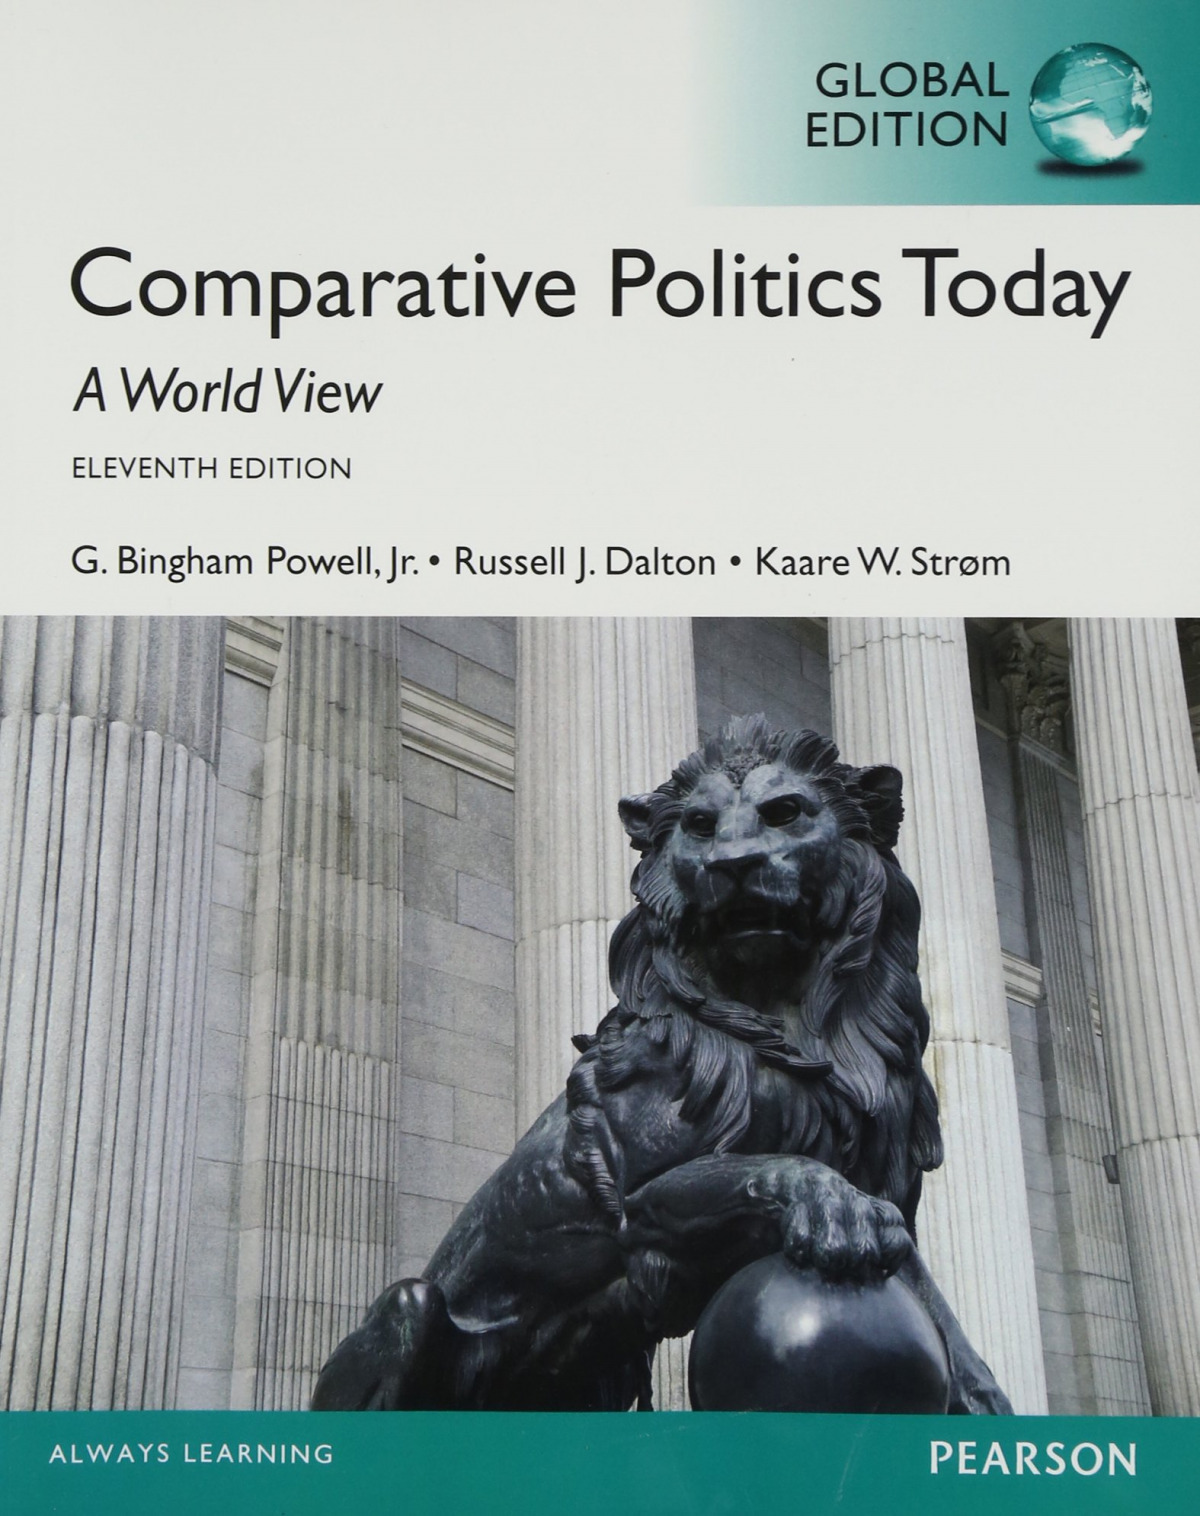 Comparative politics today: a world view, global edition, 1